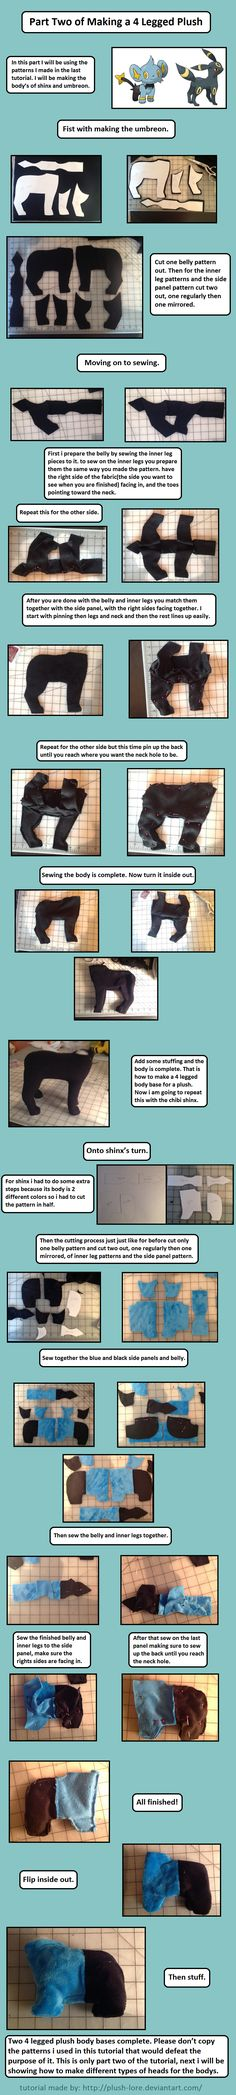 4 legged plush tutorial part 2 by Plush-Lore.deviantart.com on @DeviantArt